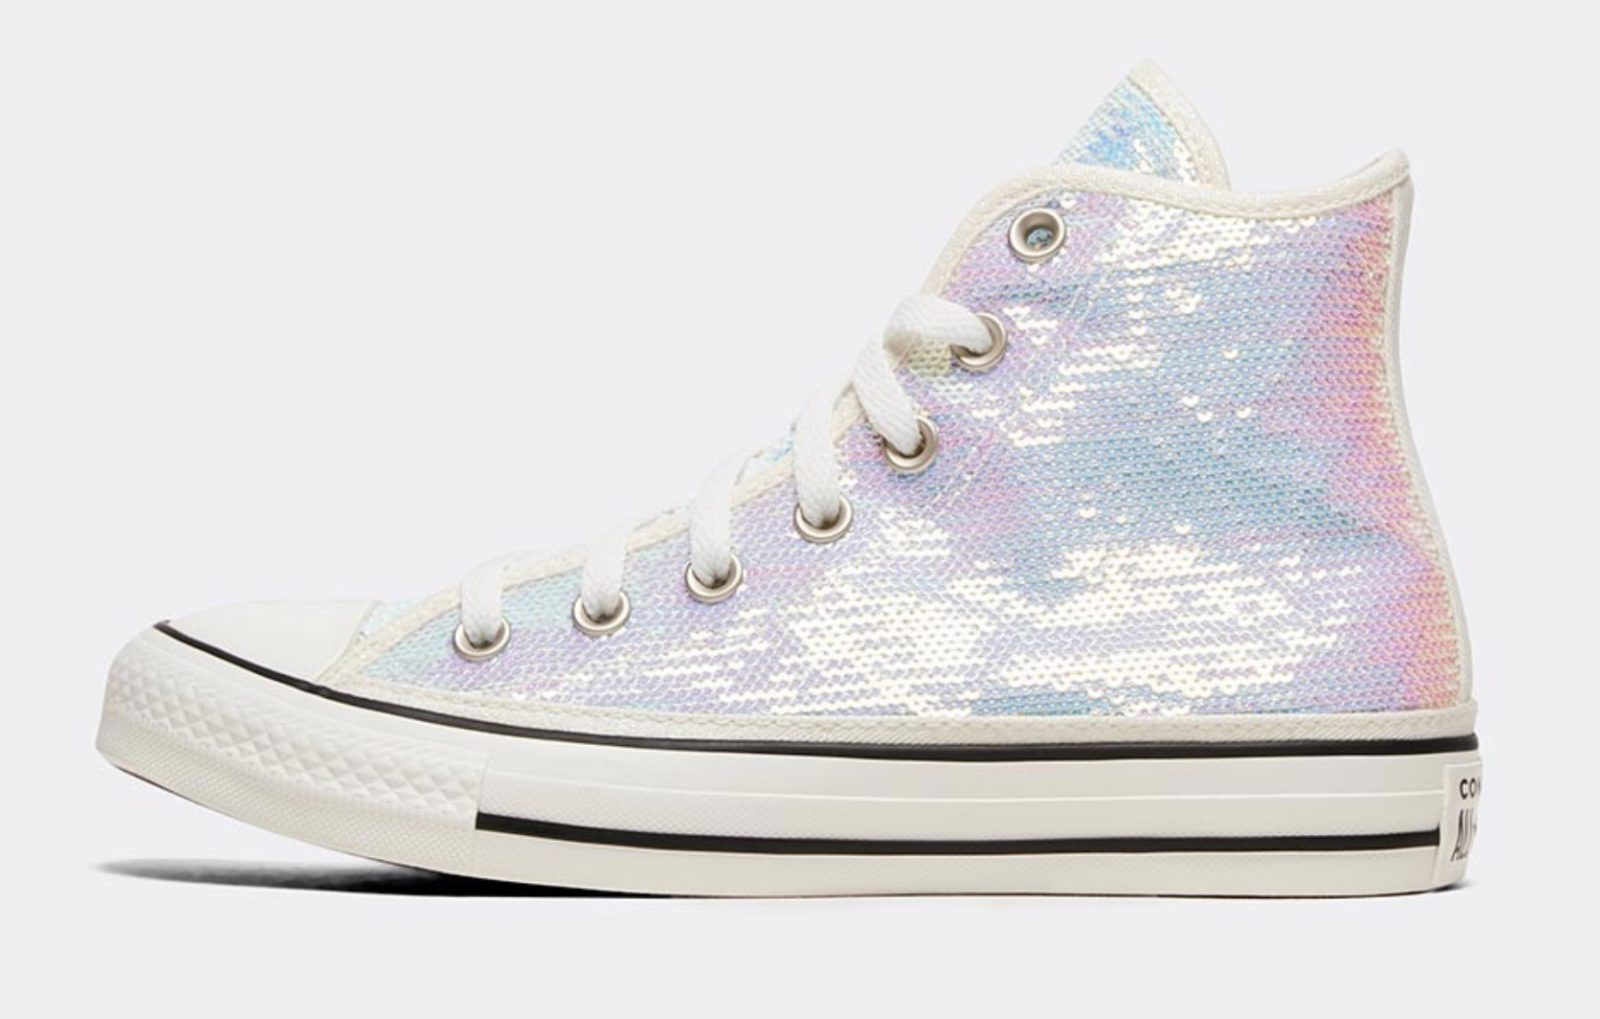 Converse Celebrate Their Chuck Taylor Silhouette In A Complete Sequin Look 4 side 2